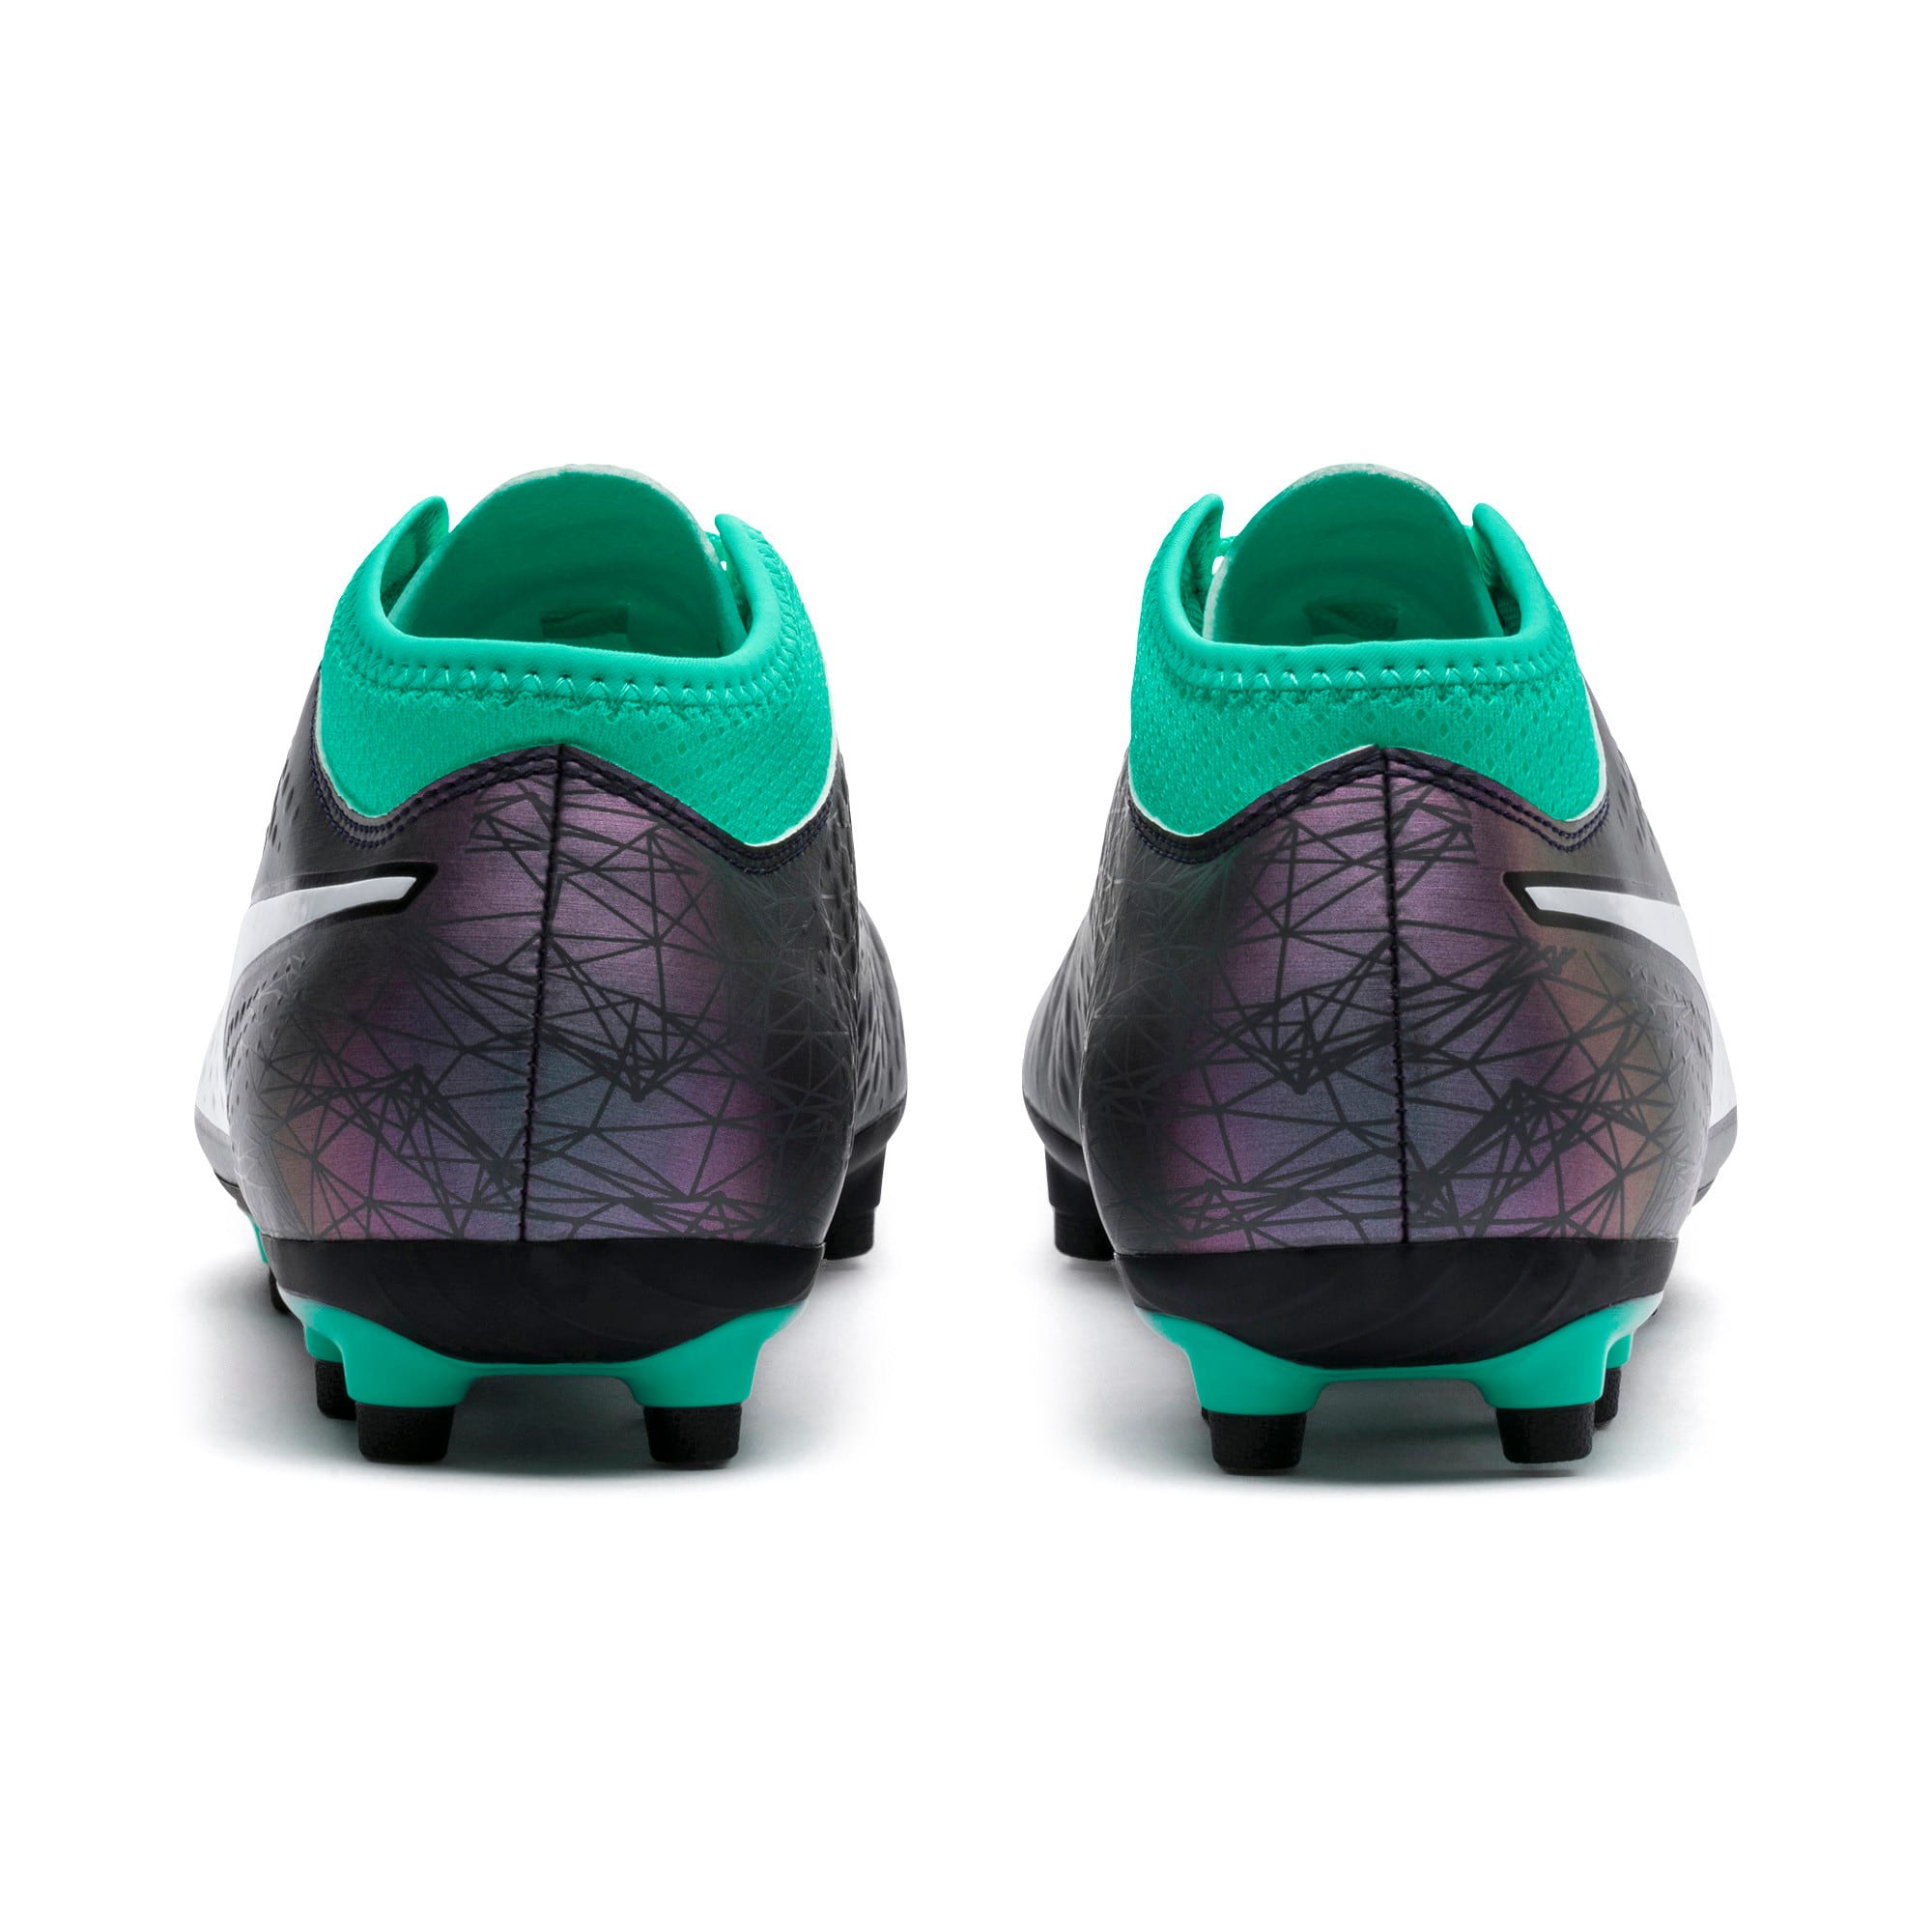 Thumbnail 3 of PUMA ONE 4 IL Syn FG Color Shift-Biscay, Col Shift-Green-White-Black, medium-IND